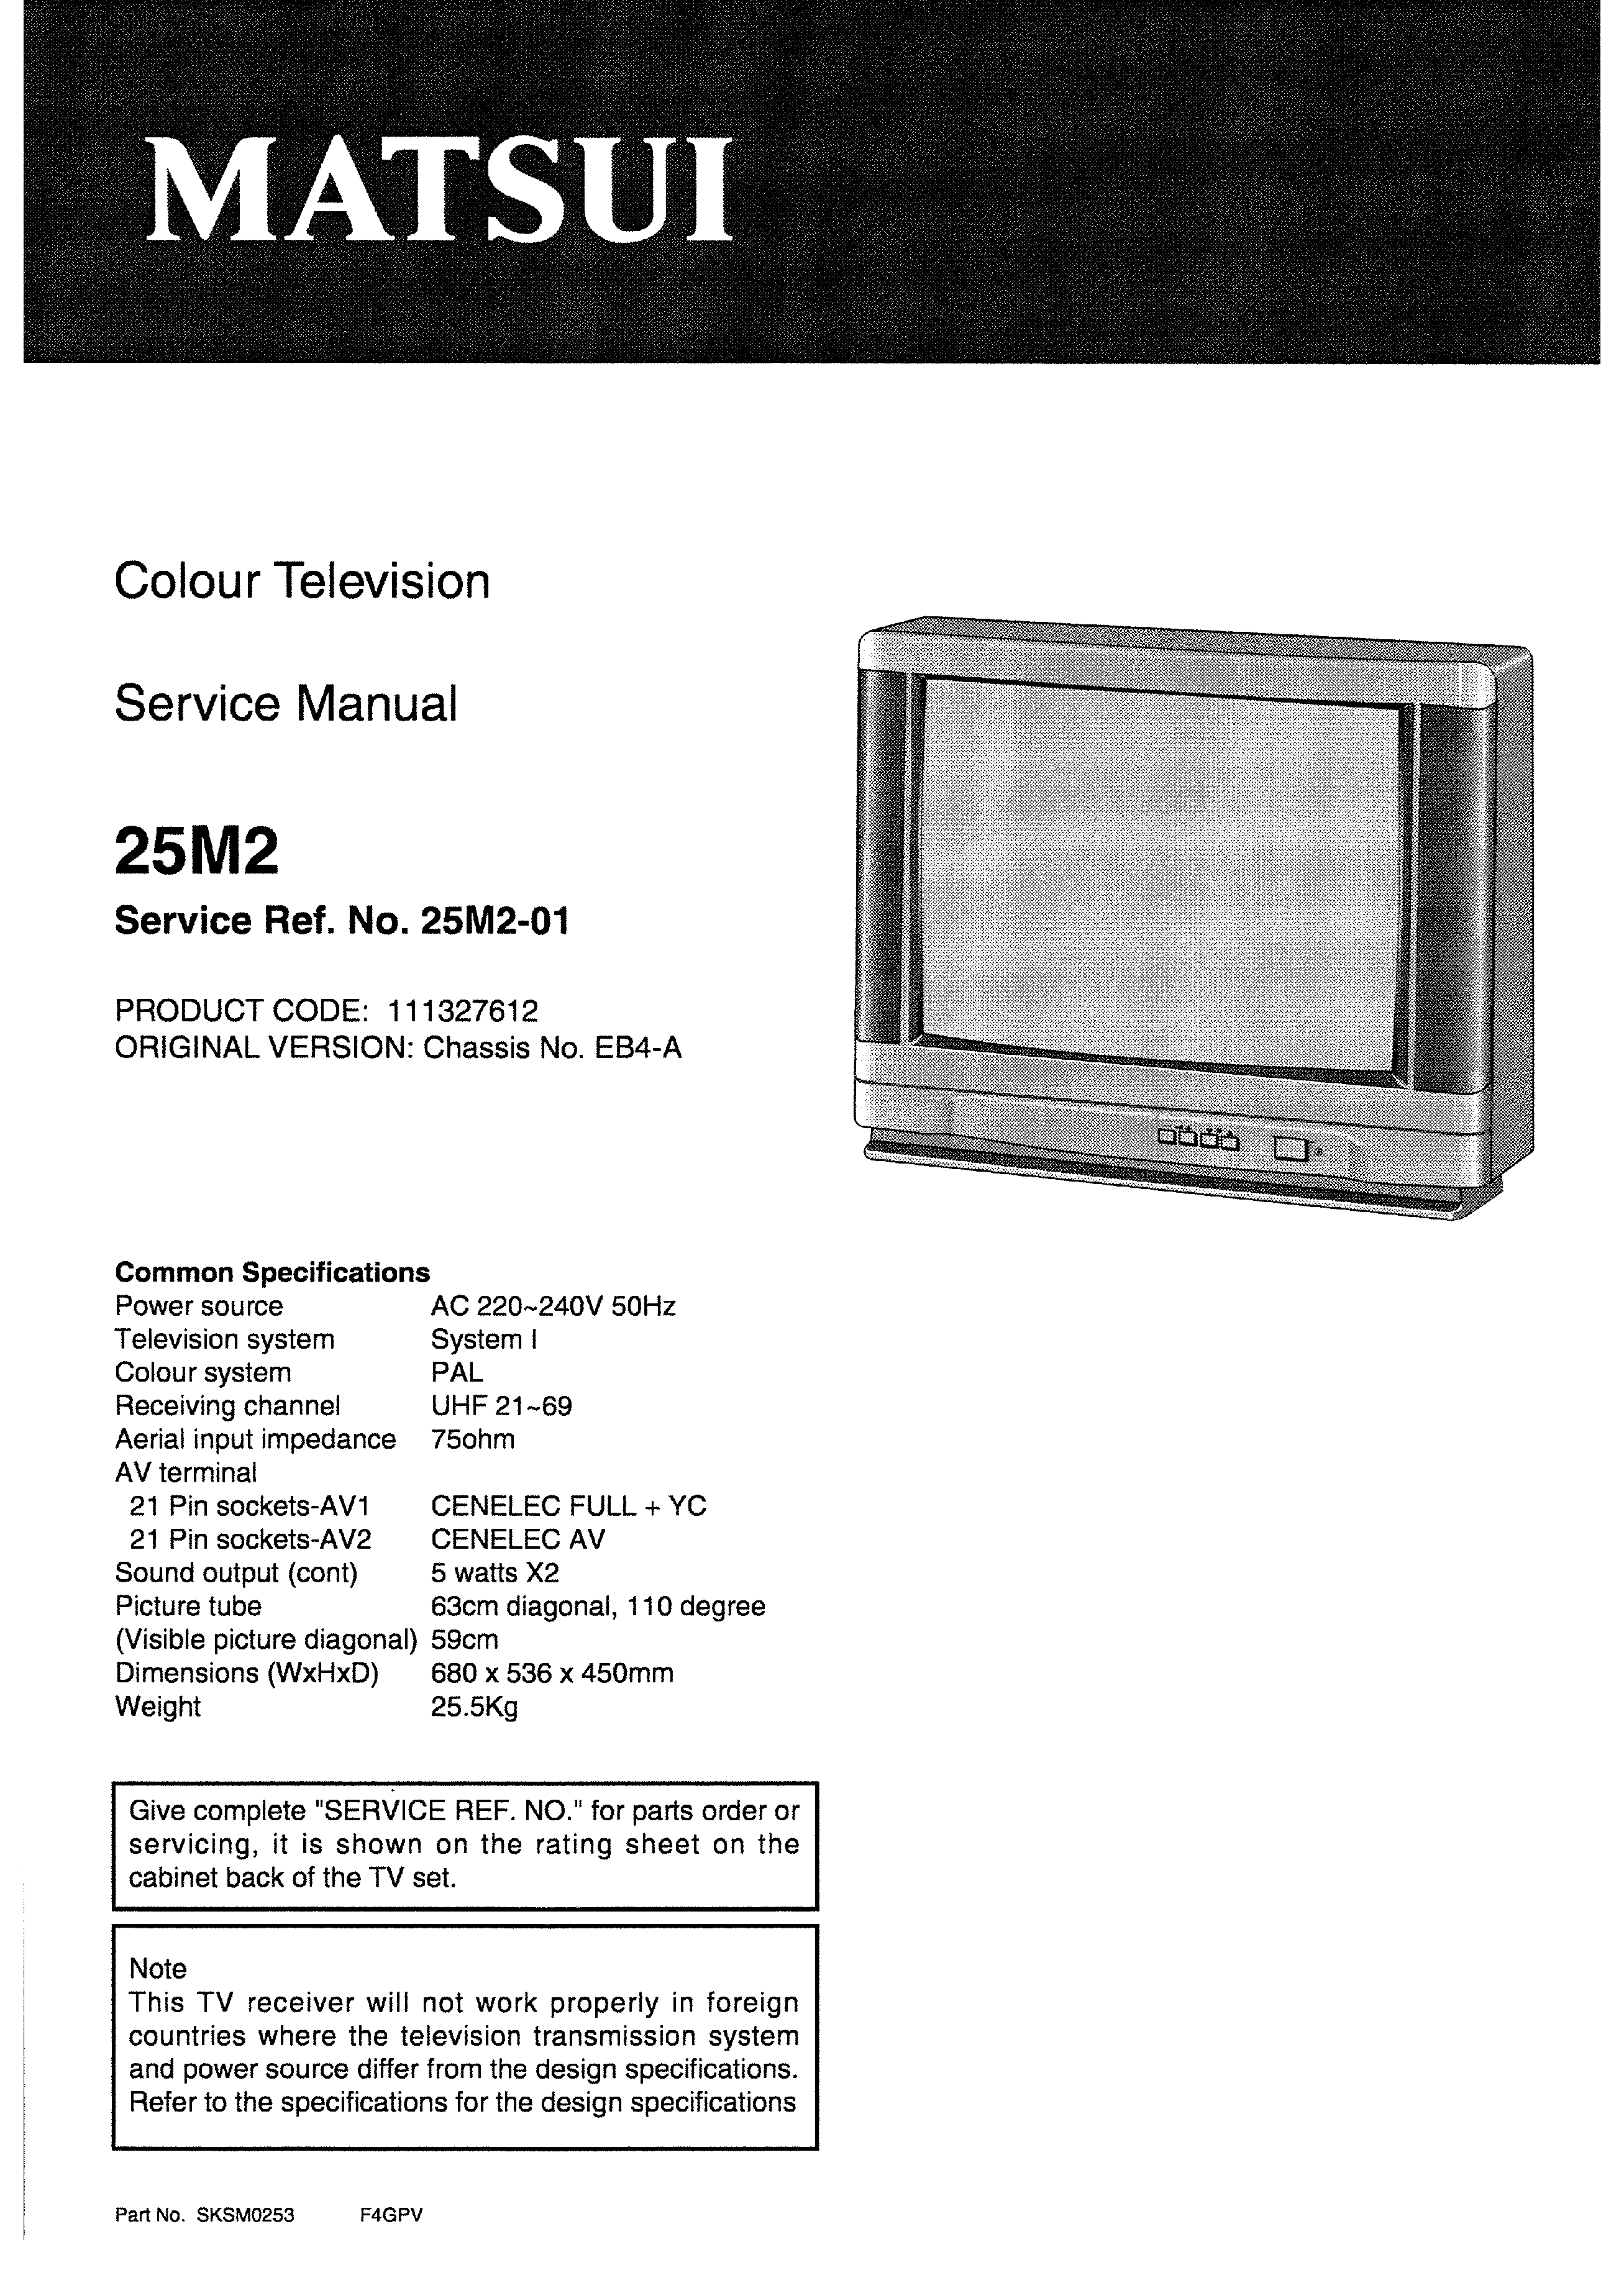 SANYO 25M2 - Service Manual Immediate Download